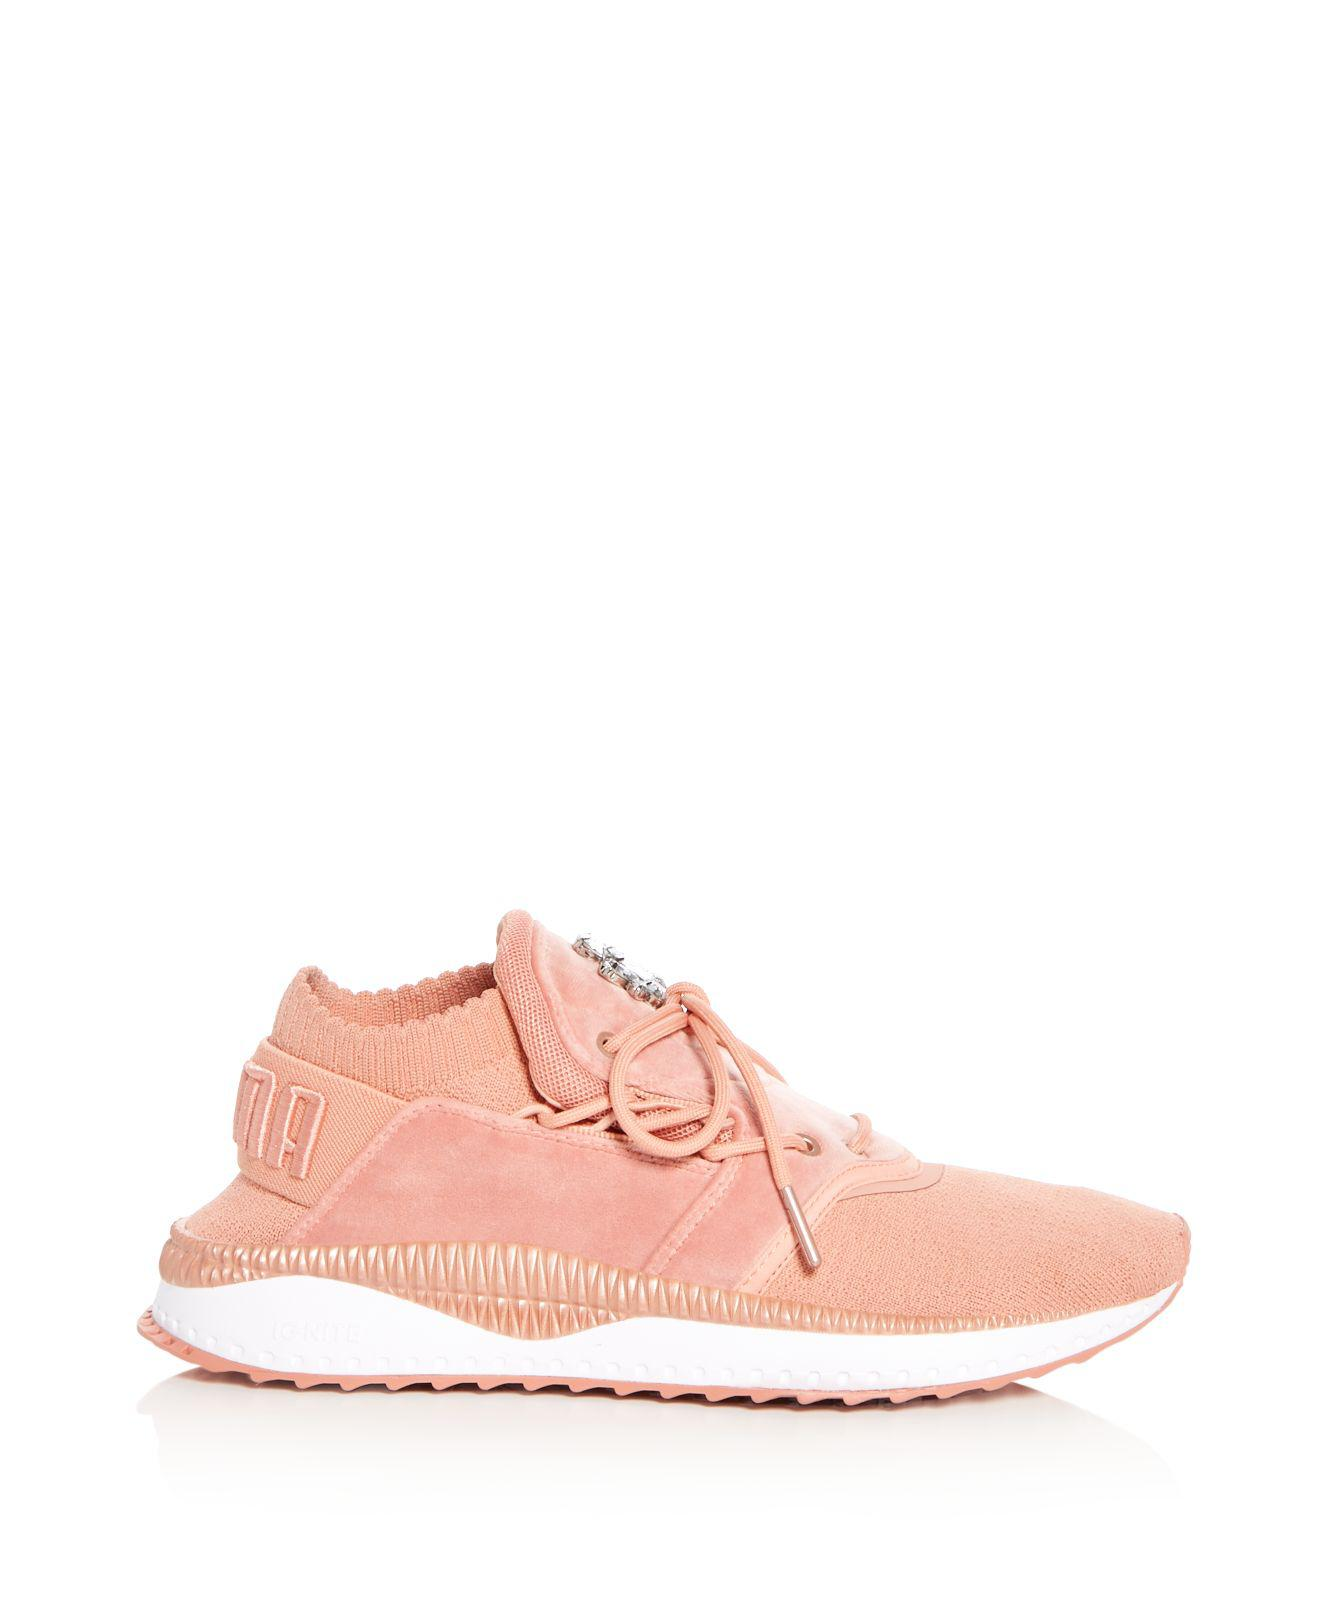 5b8b85a8b50 Lyst - PUMA Women s Tsugi Shinsei Velour Sneakers in Pink